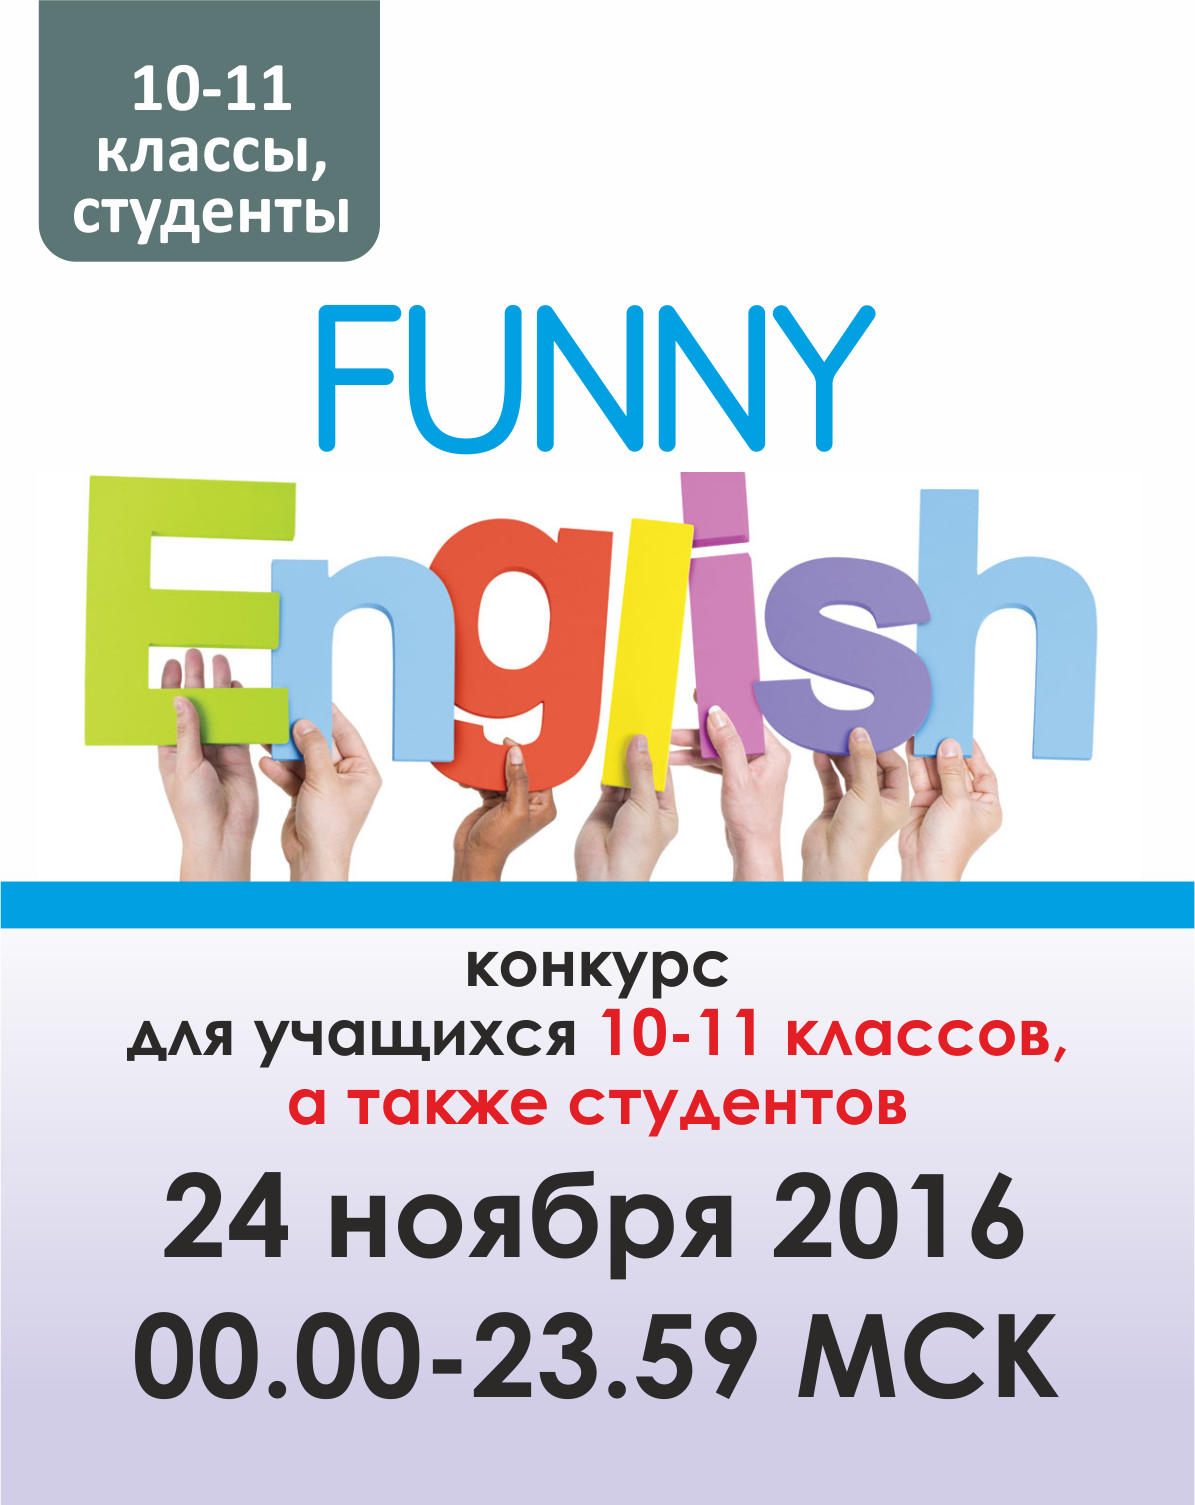 Funny English (10-11 классы, студенты)